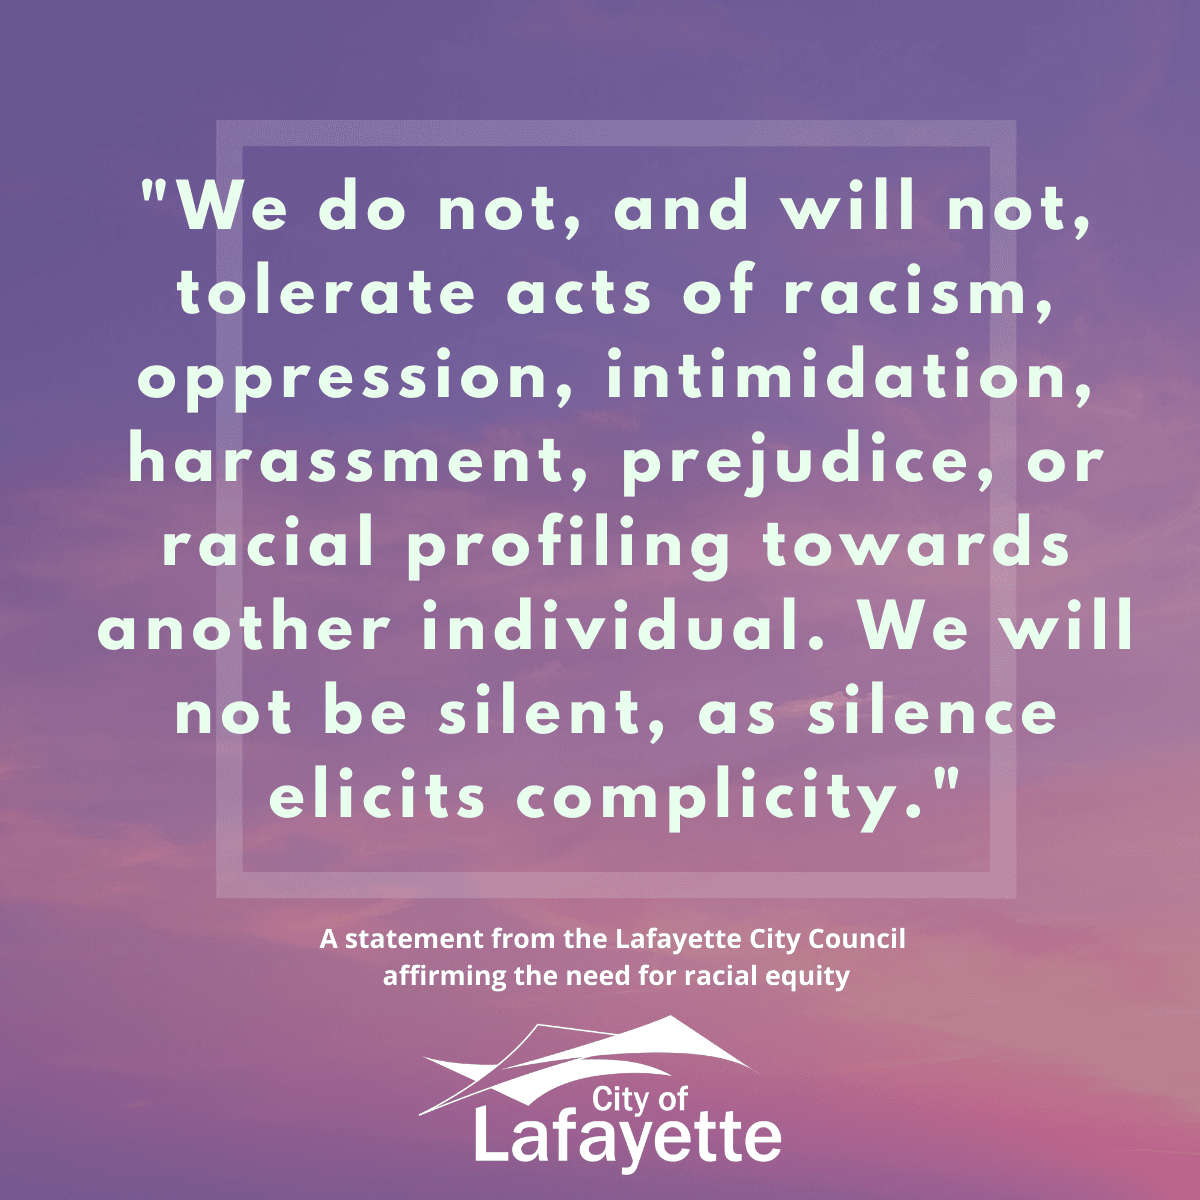 City Council Statement